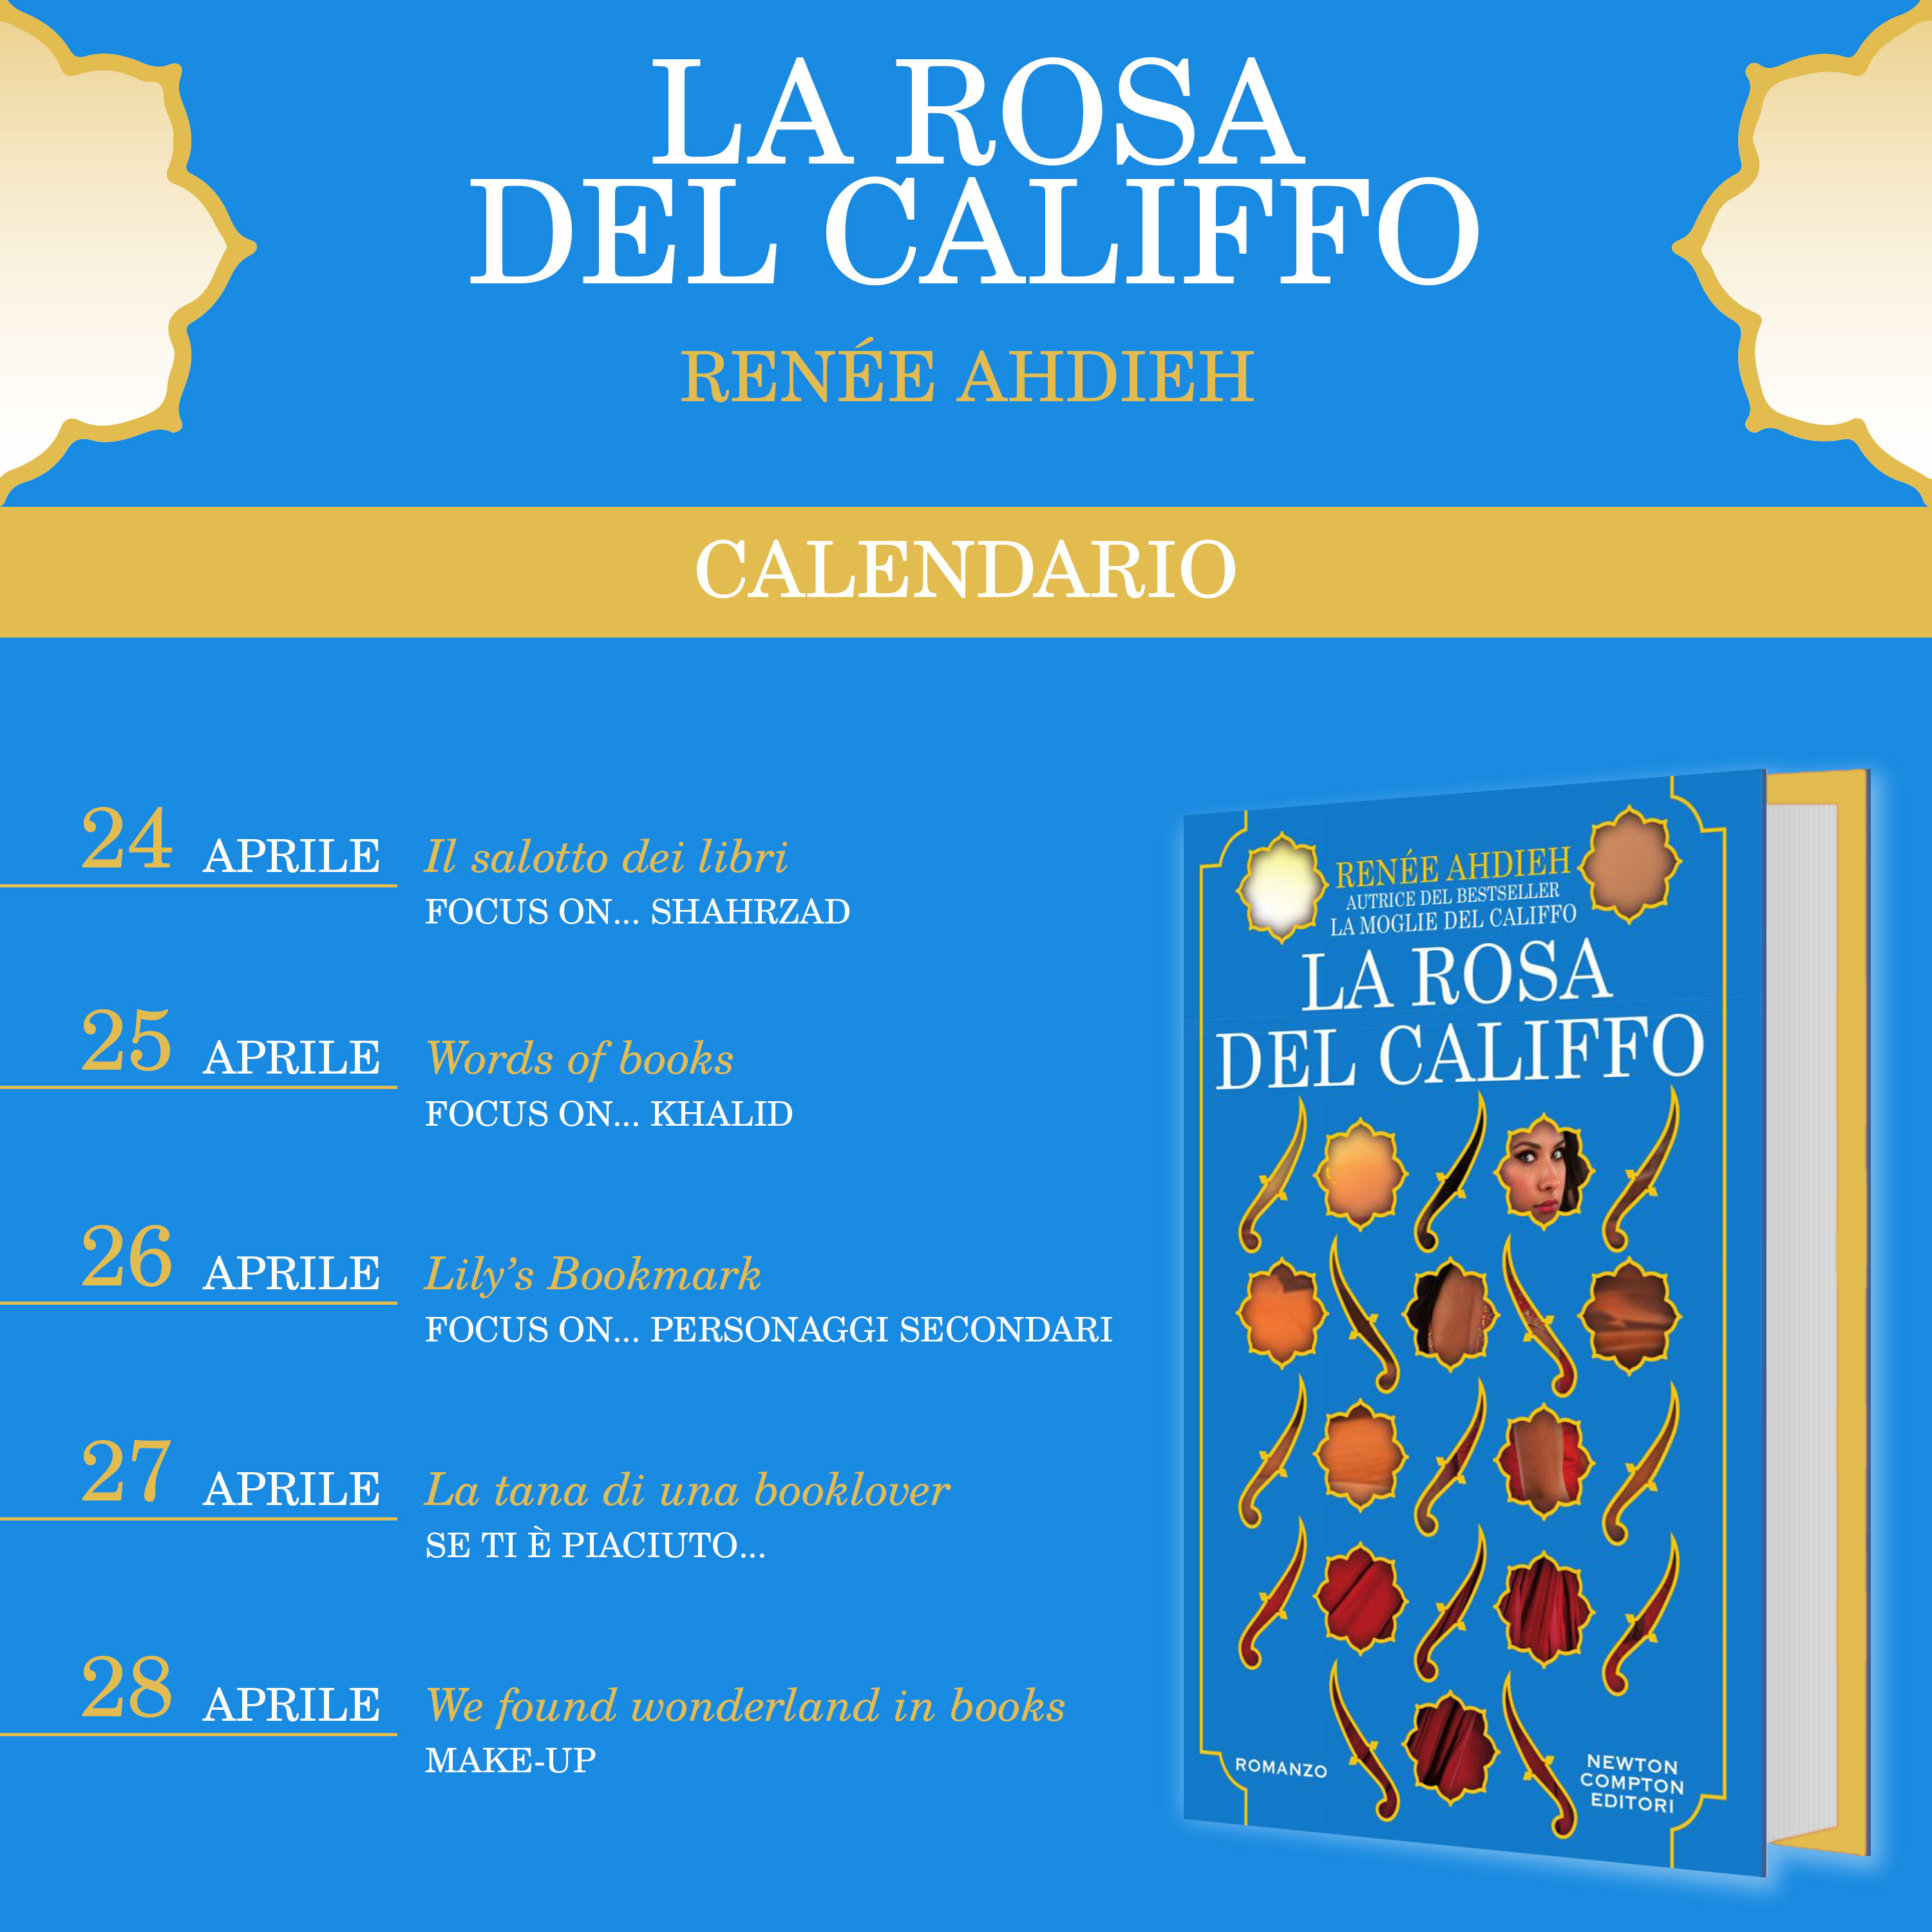 Calendario La rosa del califfo